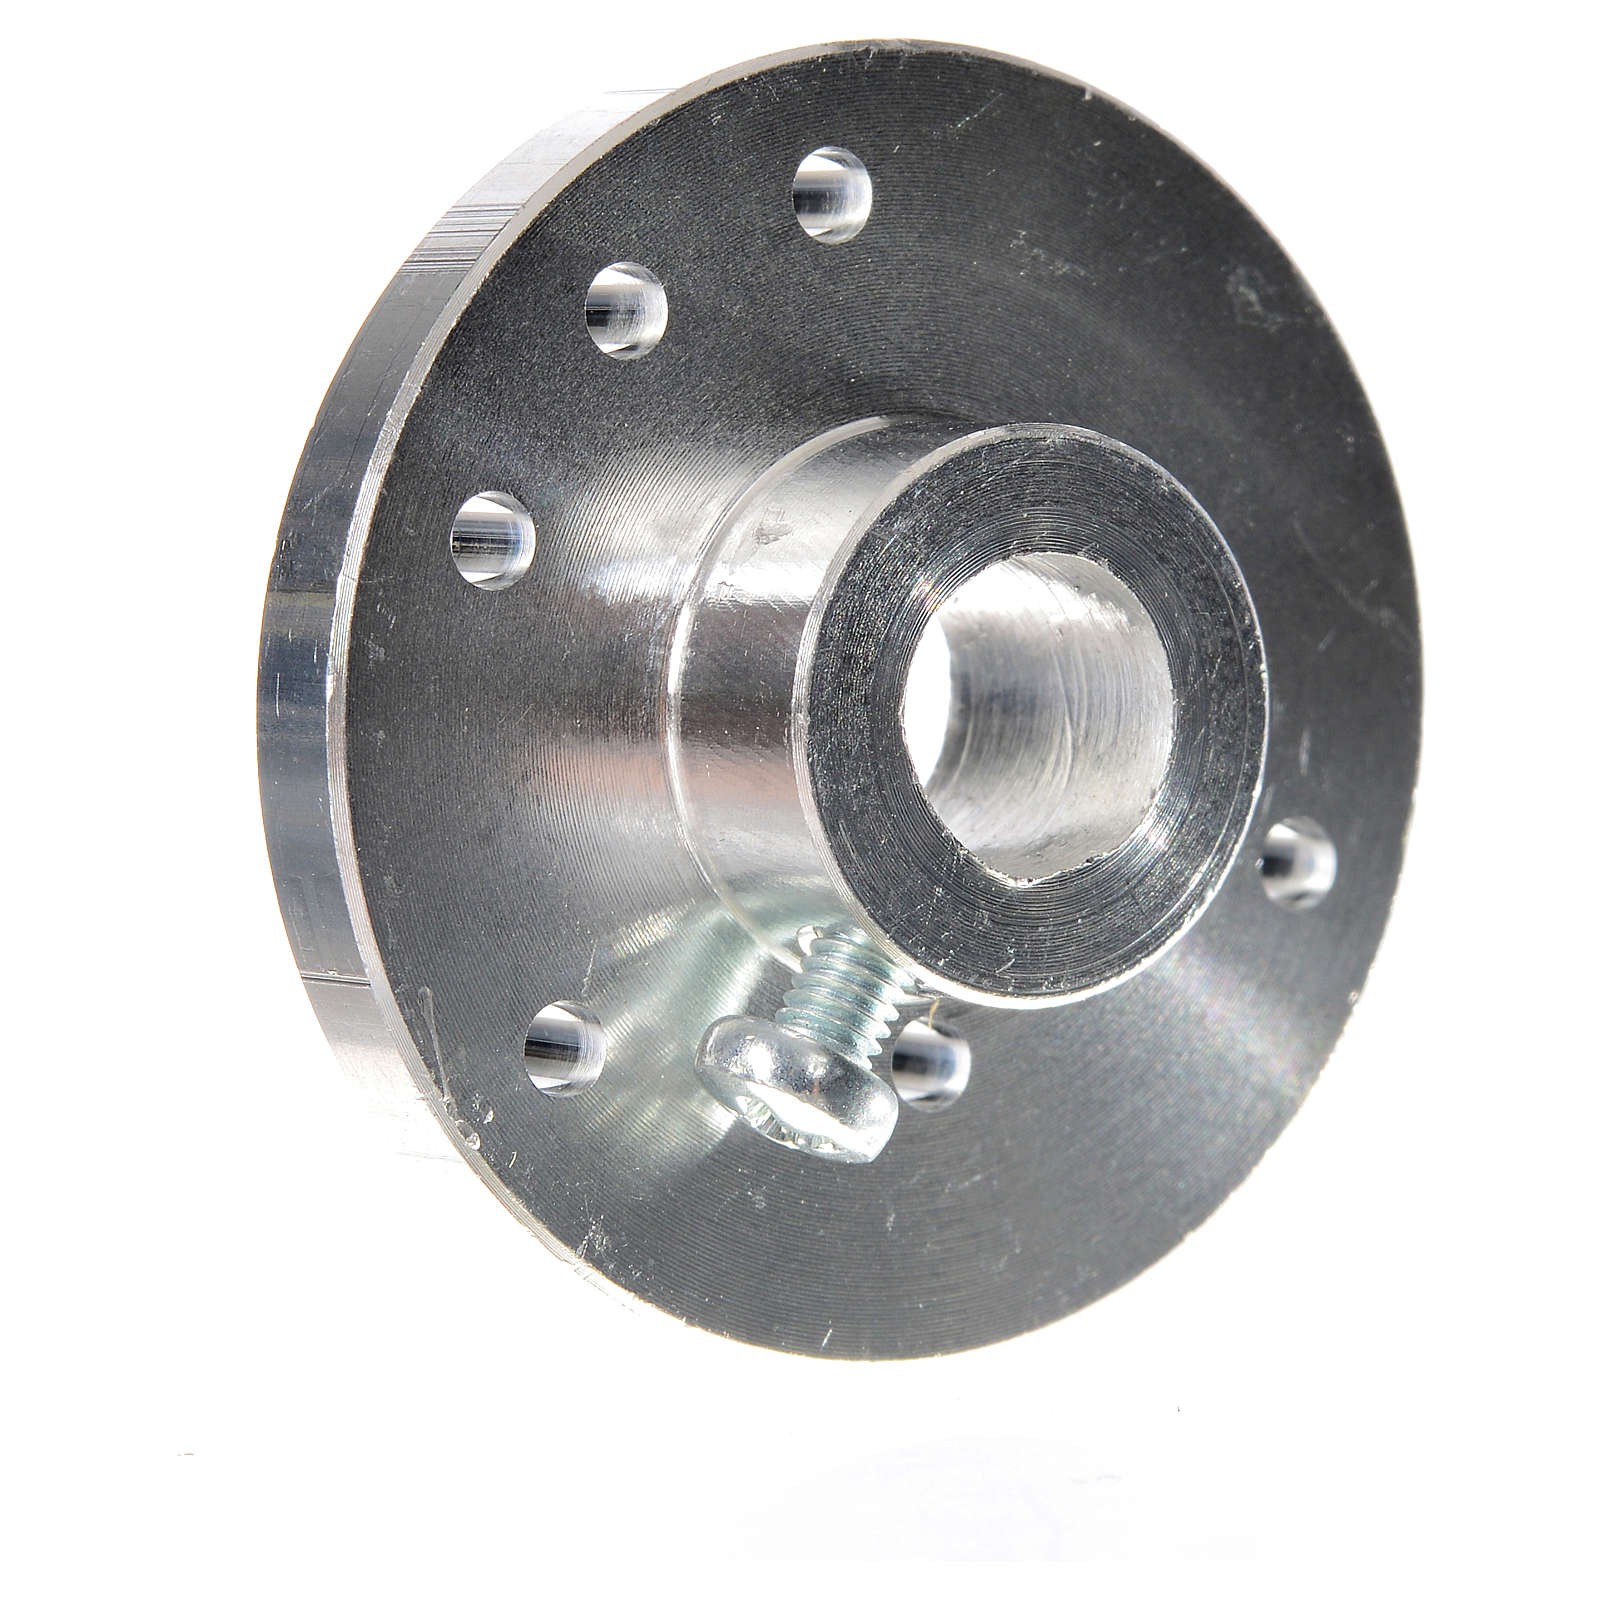 Nativity accessory, pulley for gear motor for 8mm spindle MP 4